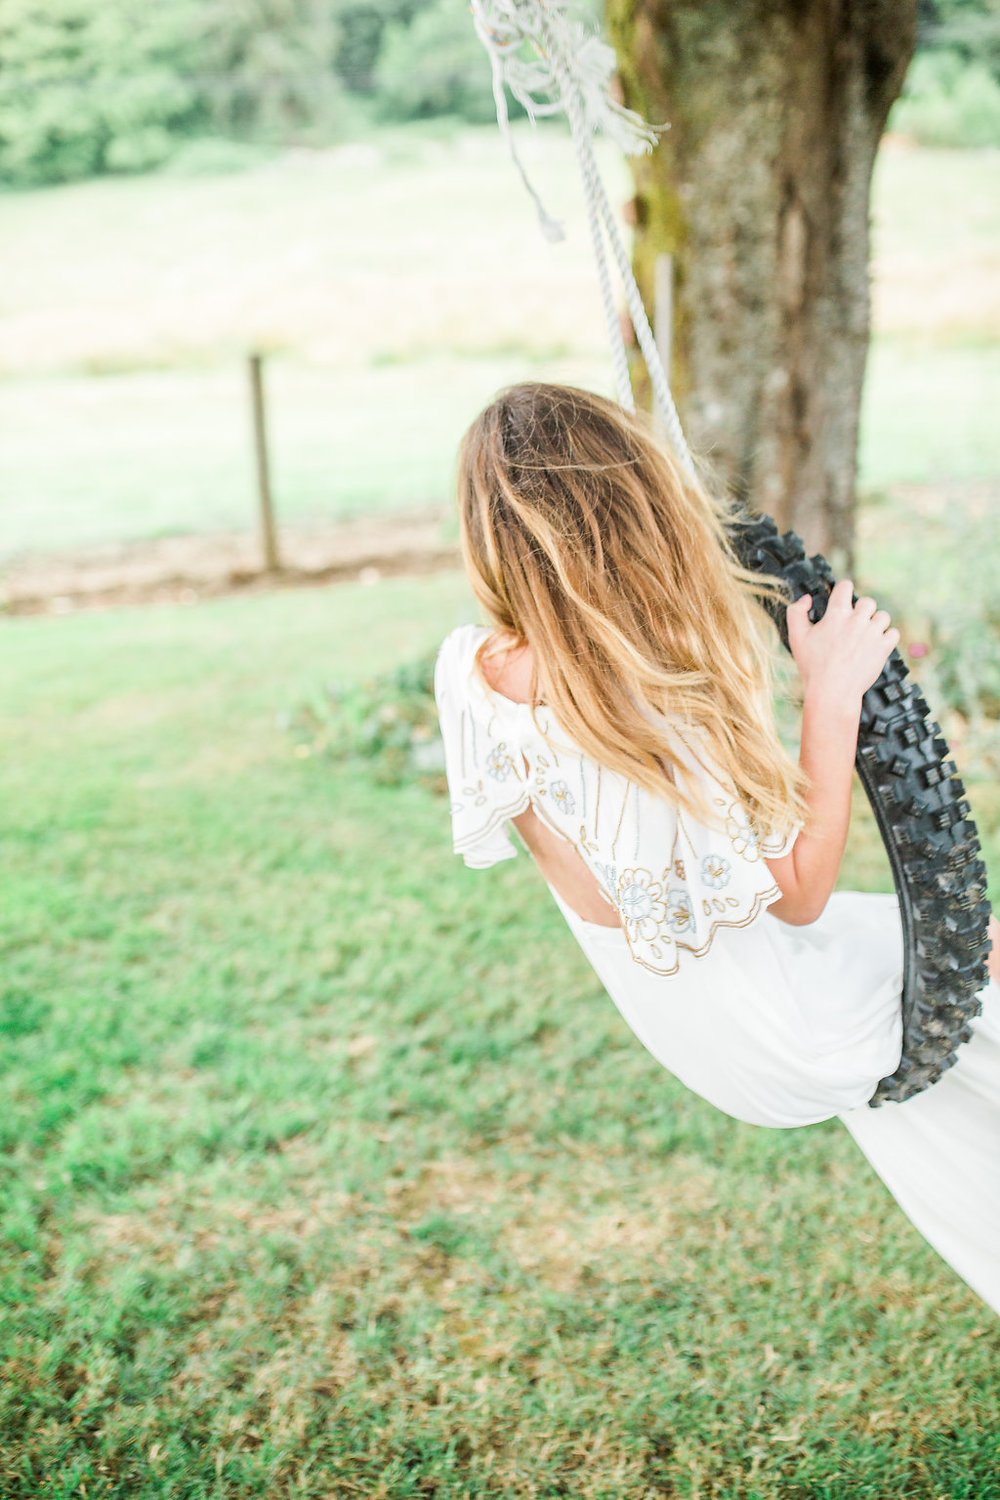 Beautiful outdoor engagement session | What to wear | Photo Inspiration | Engagement session | Portrait | White | Detail Shots | Mastin Labs | Engaged | Fuji 400 | Beautiful Couple | Couple in Love | Beautiful posing | Hair Piece for Photo Session | Engaged to be Married | Tire swing Photo Session